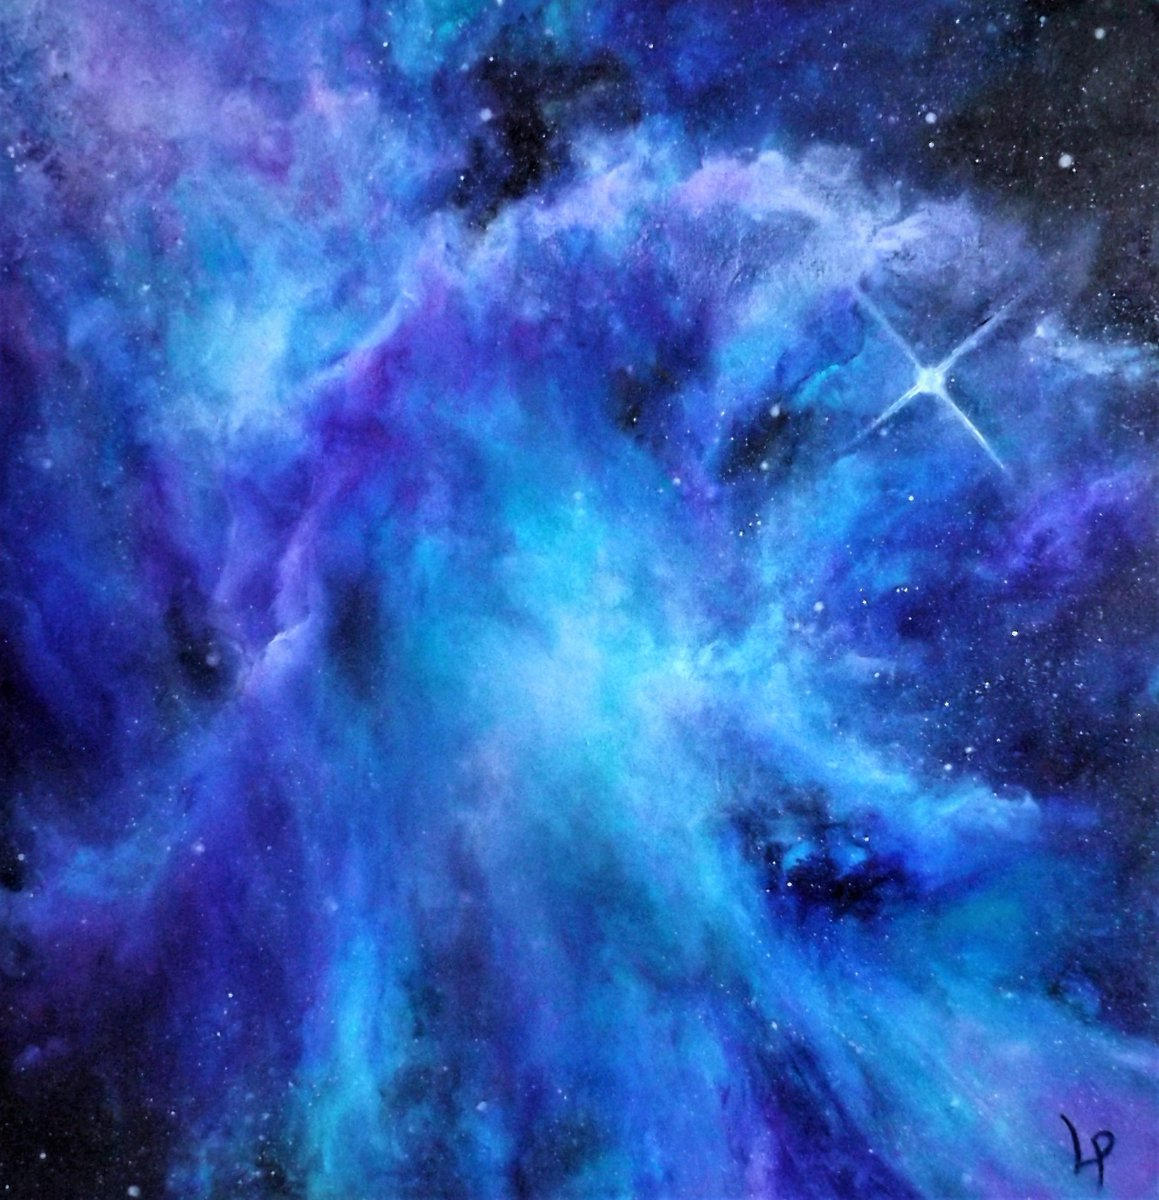 Finger-painting the cosmos one digit at a time :)